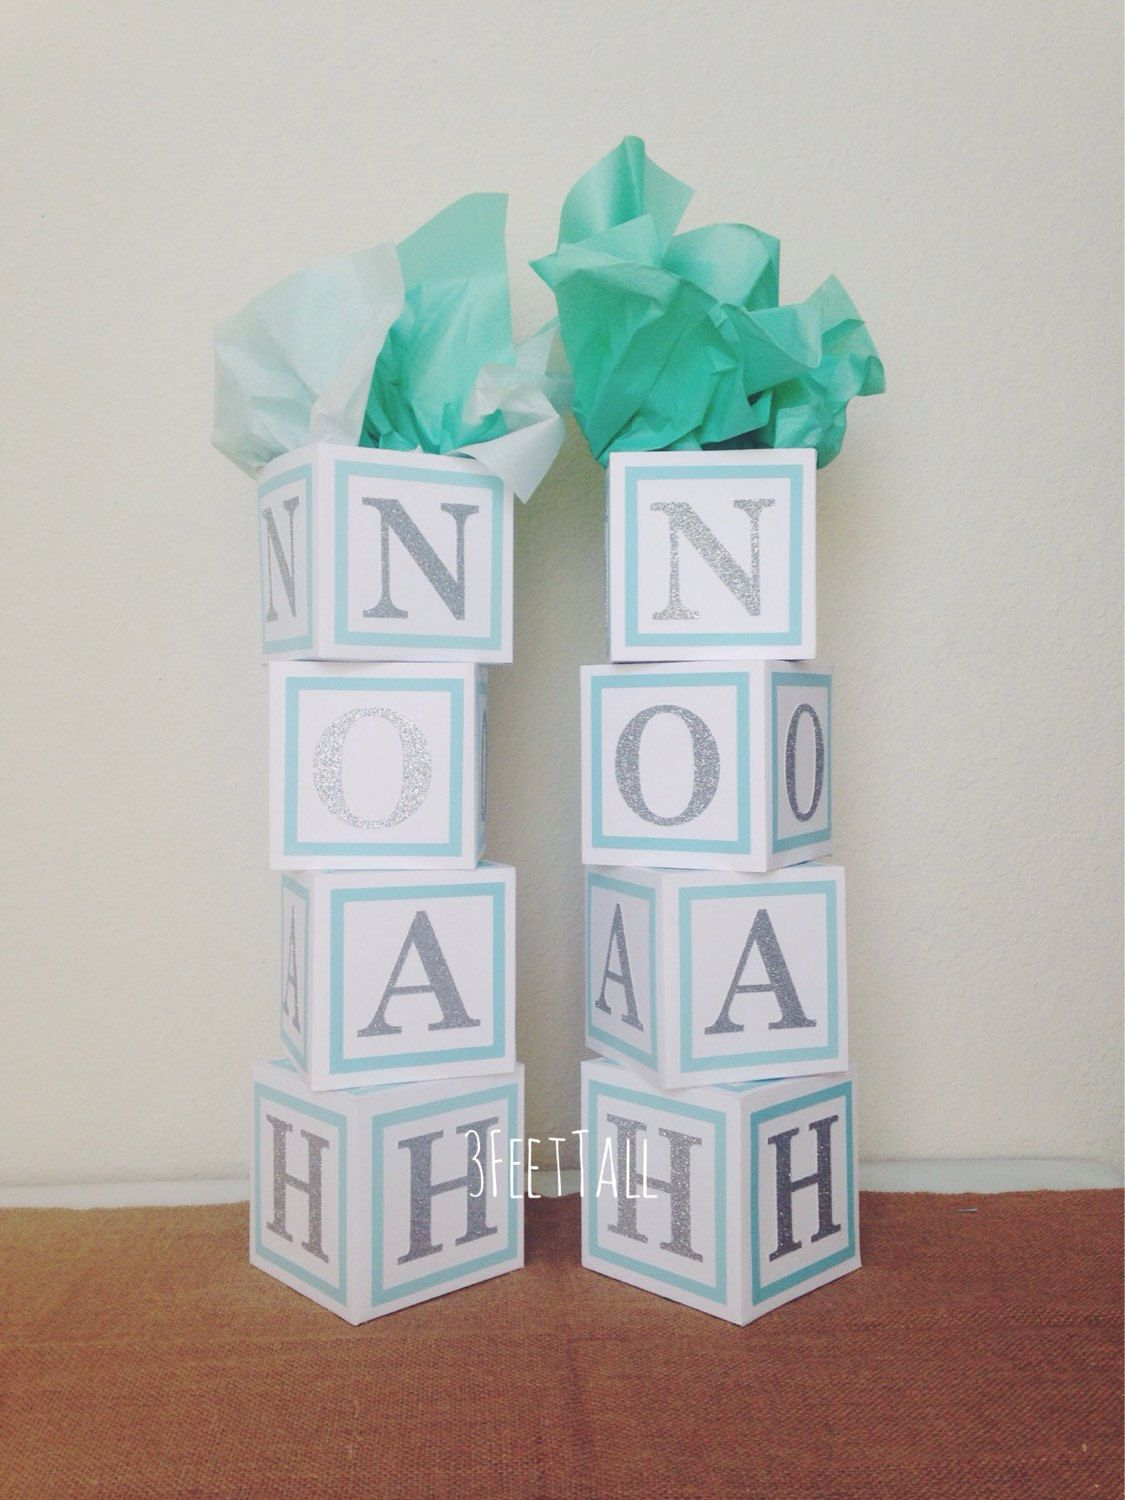 Baby shower centerpiece alphabet block centerpiece by for Alphabet blocks cake decoration